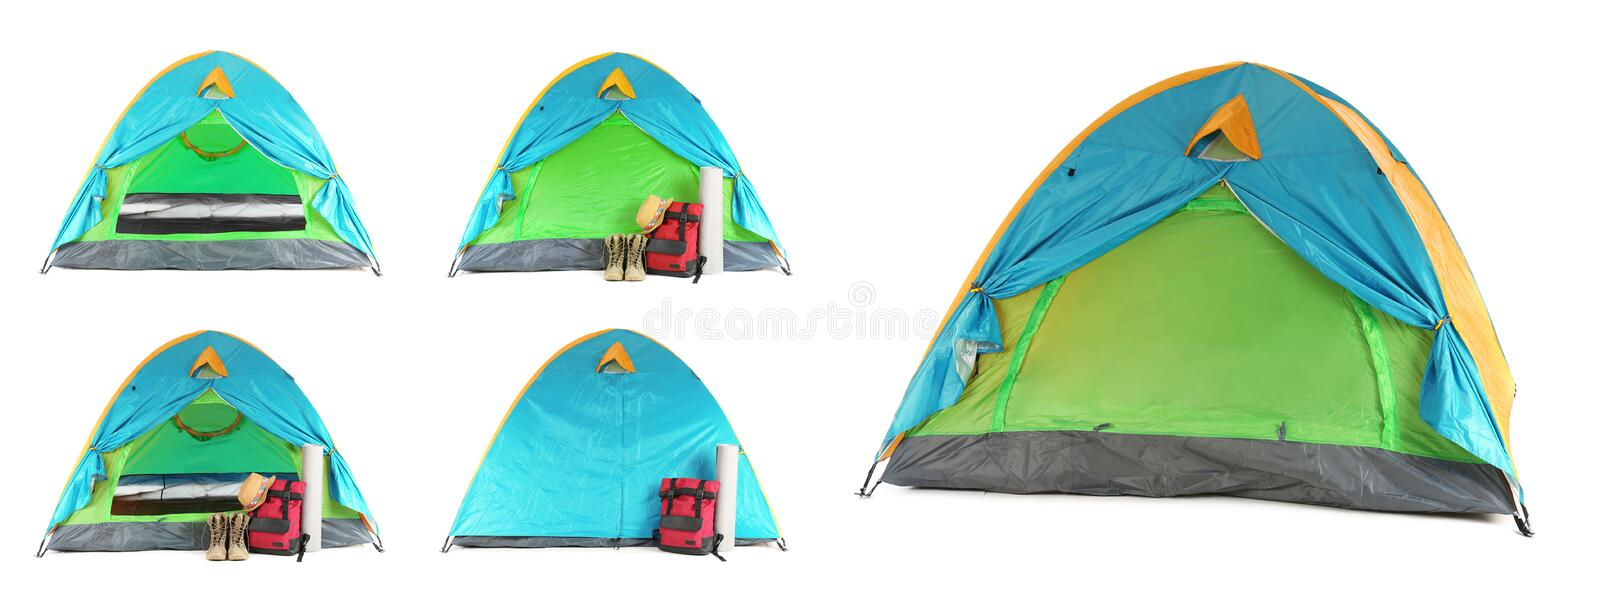 Set of comfortable tents and different camping equipment on white background. Banner design stock photos